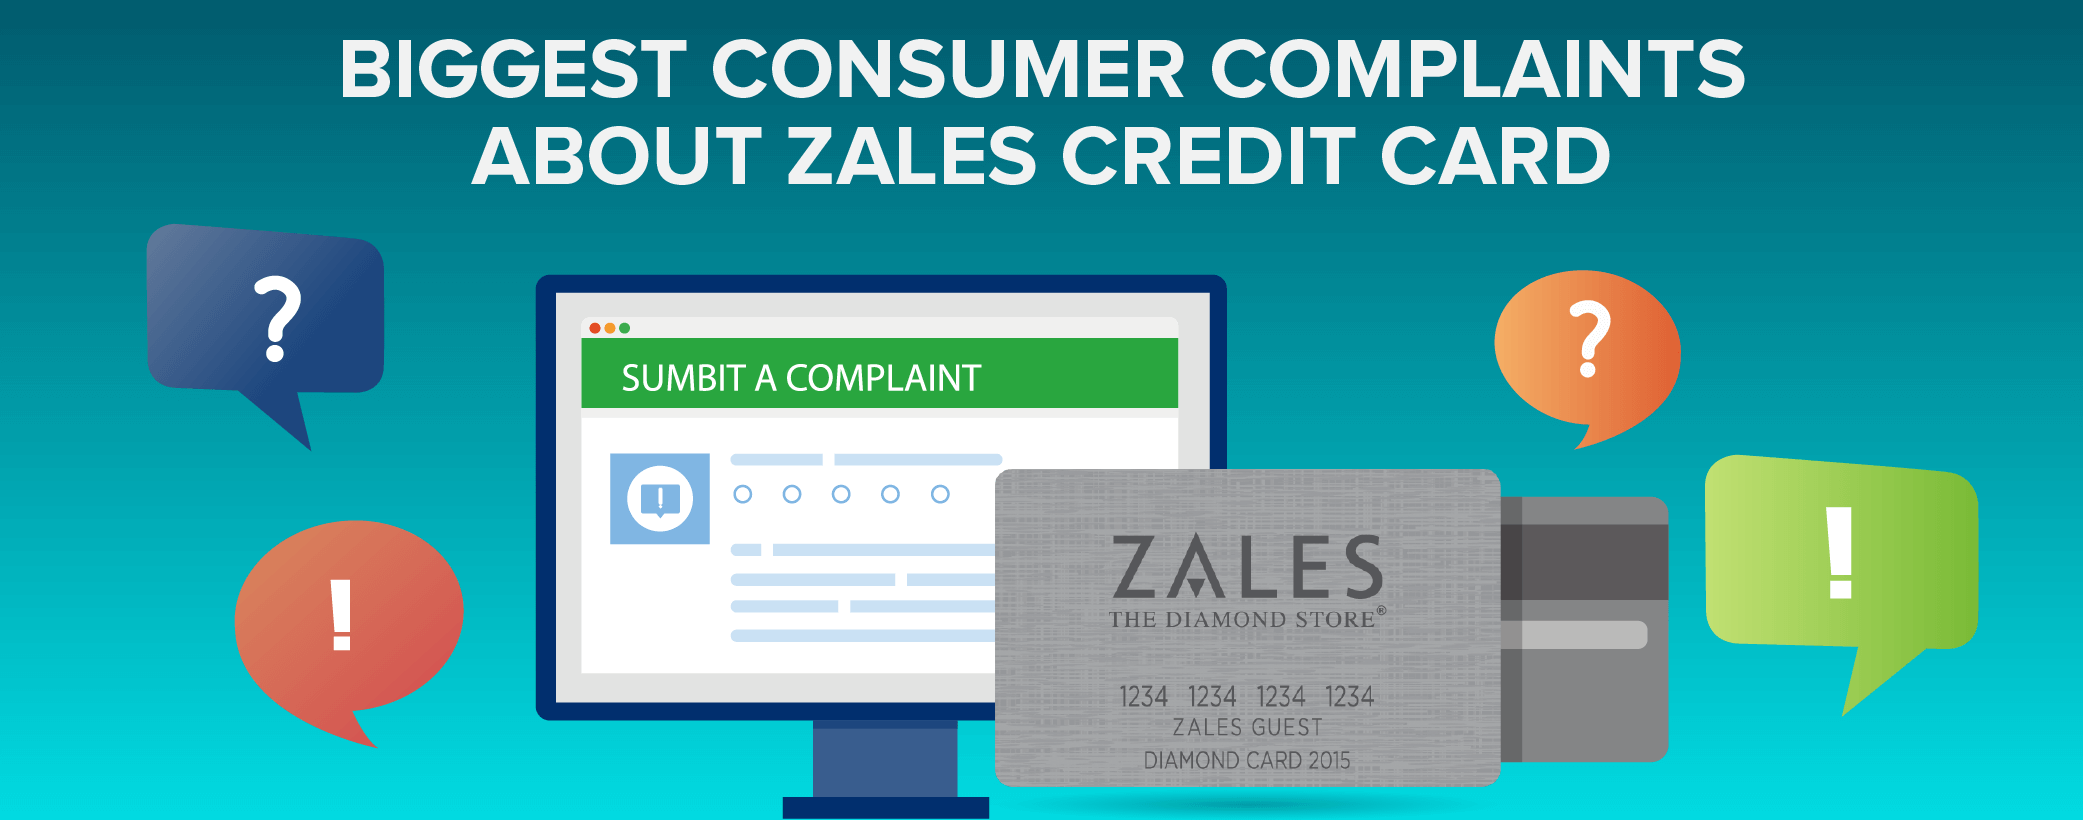 Biggest consumer complaints about Zales credit card